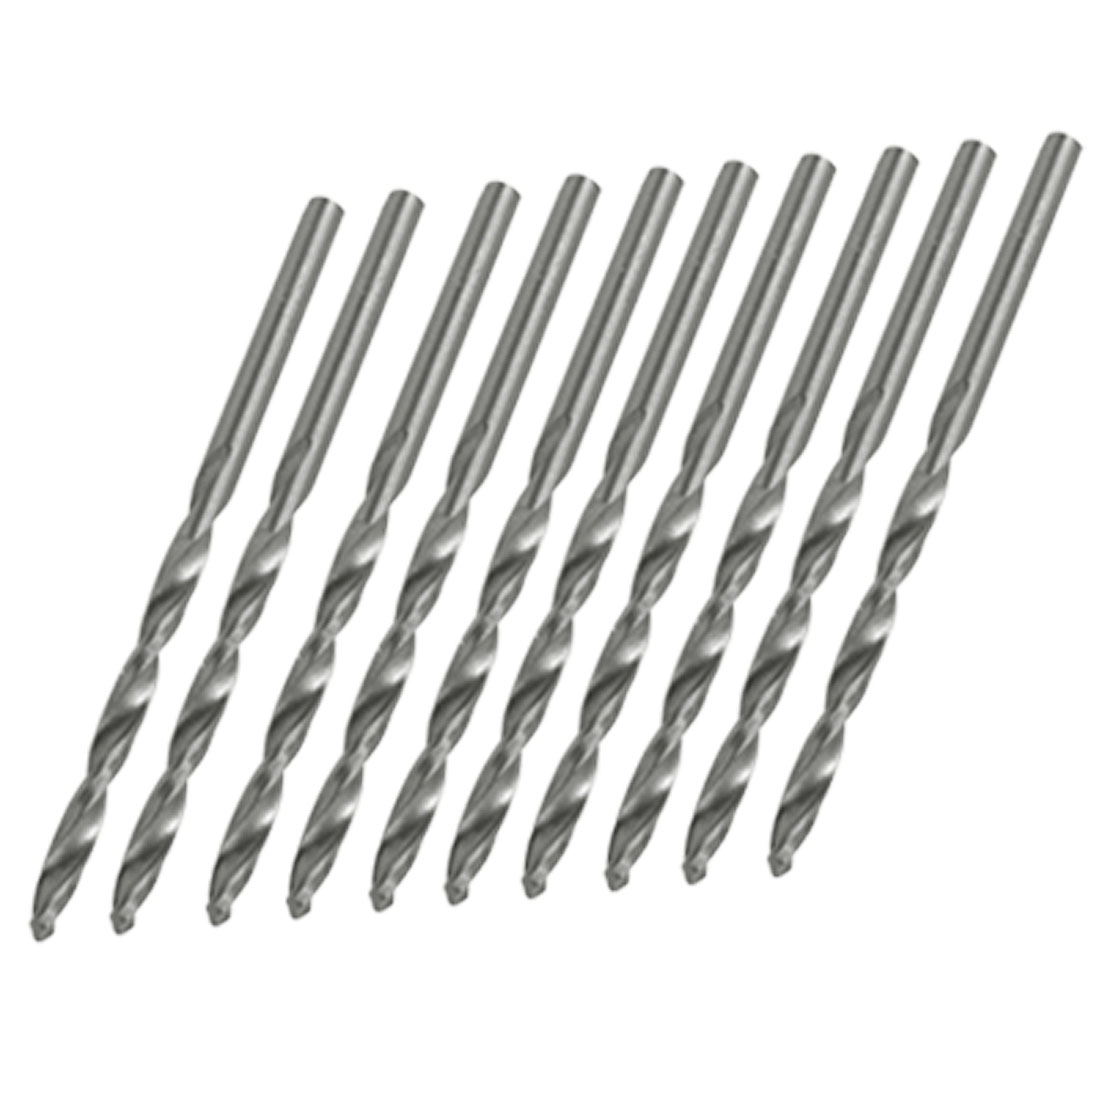 3.2mm Silver Tone Metal Electric Drill Twist Bits 10PCS